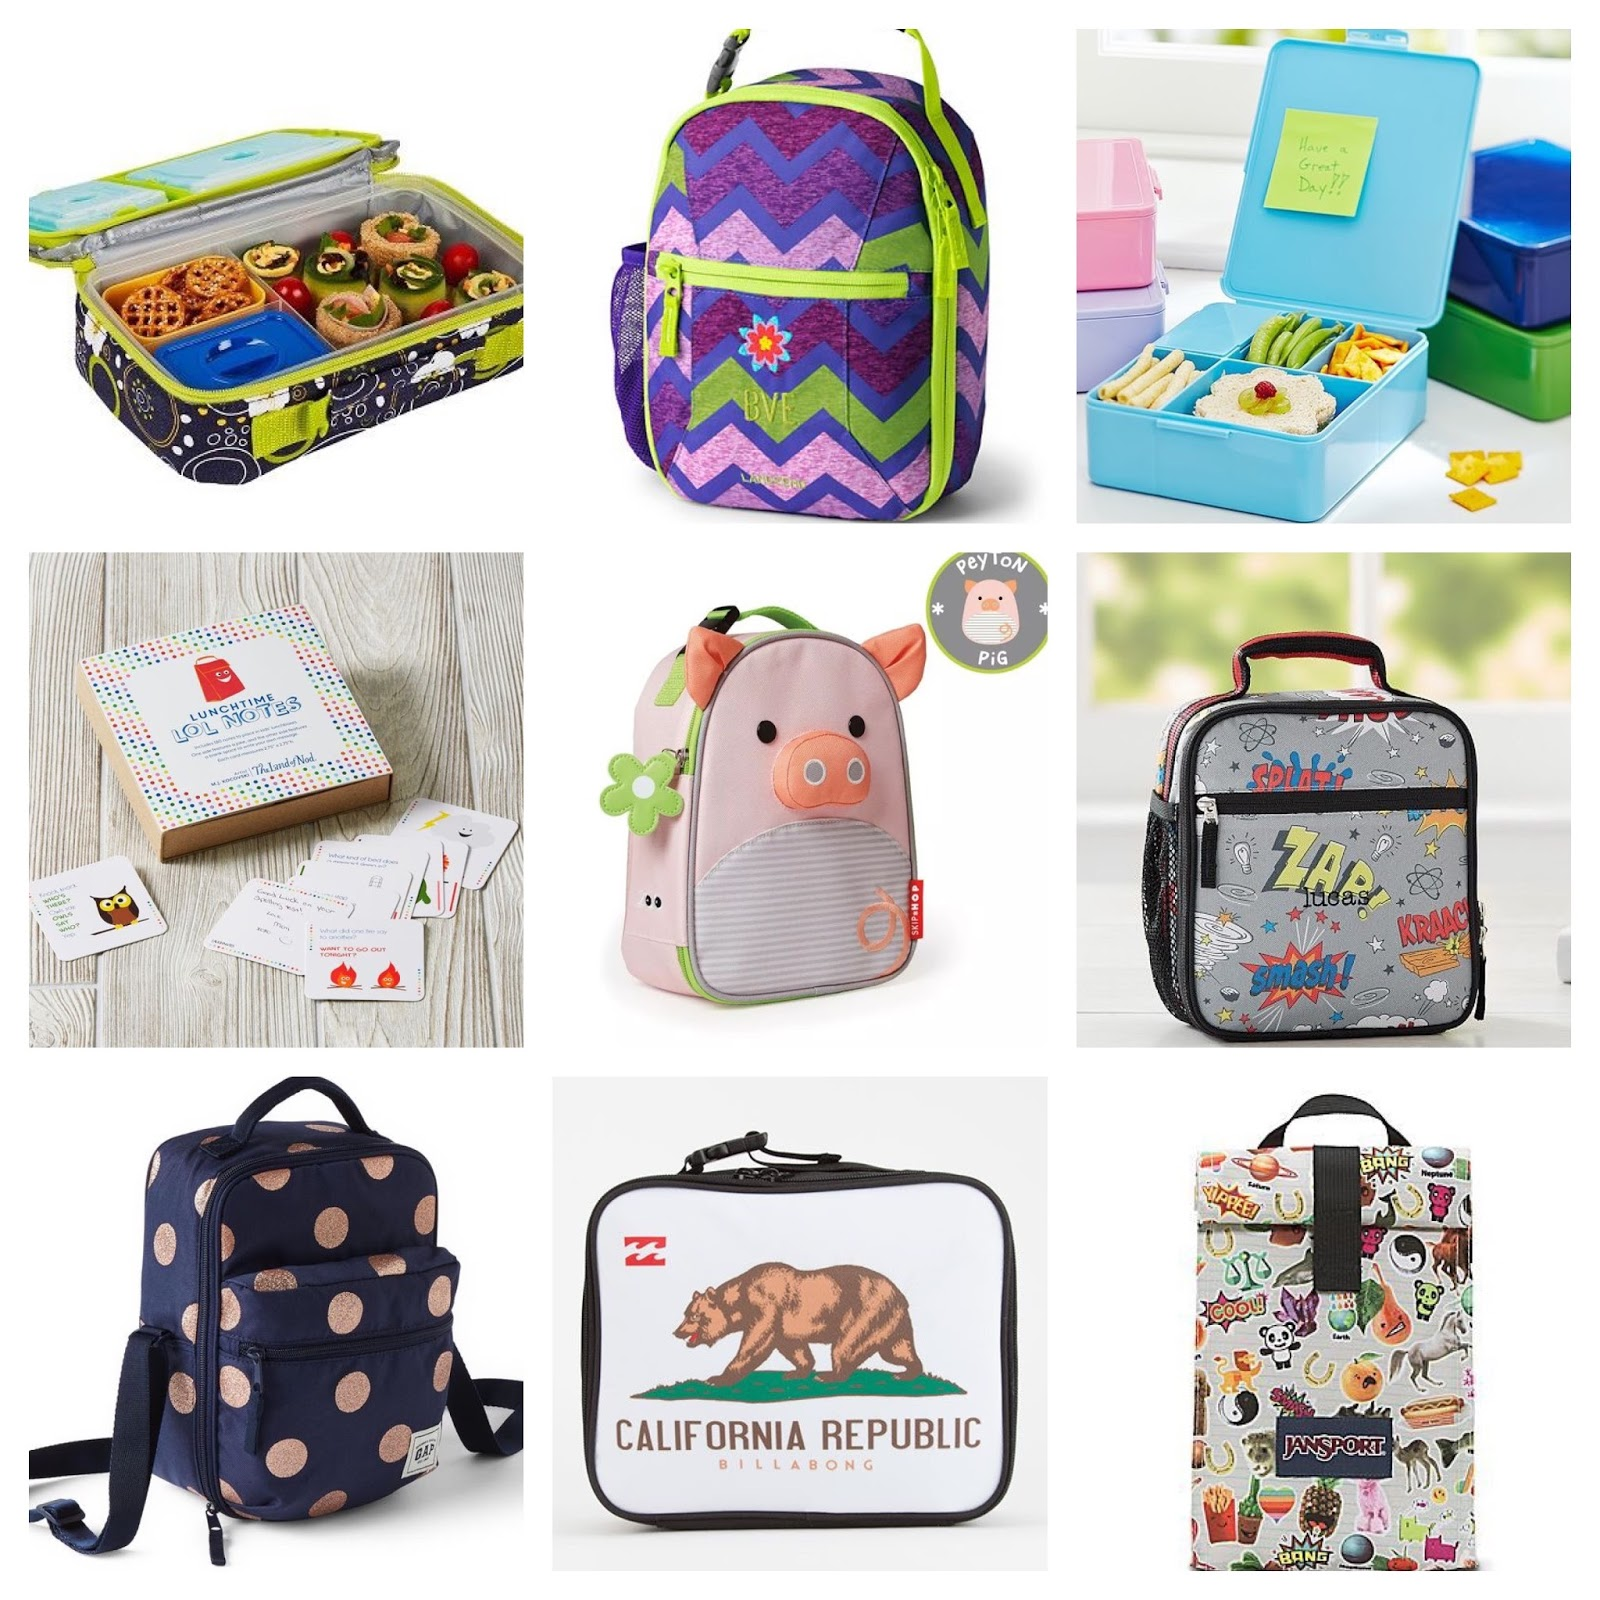 Ruth S Orange County Finds Friday Finds Kids Lunch Boxes